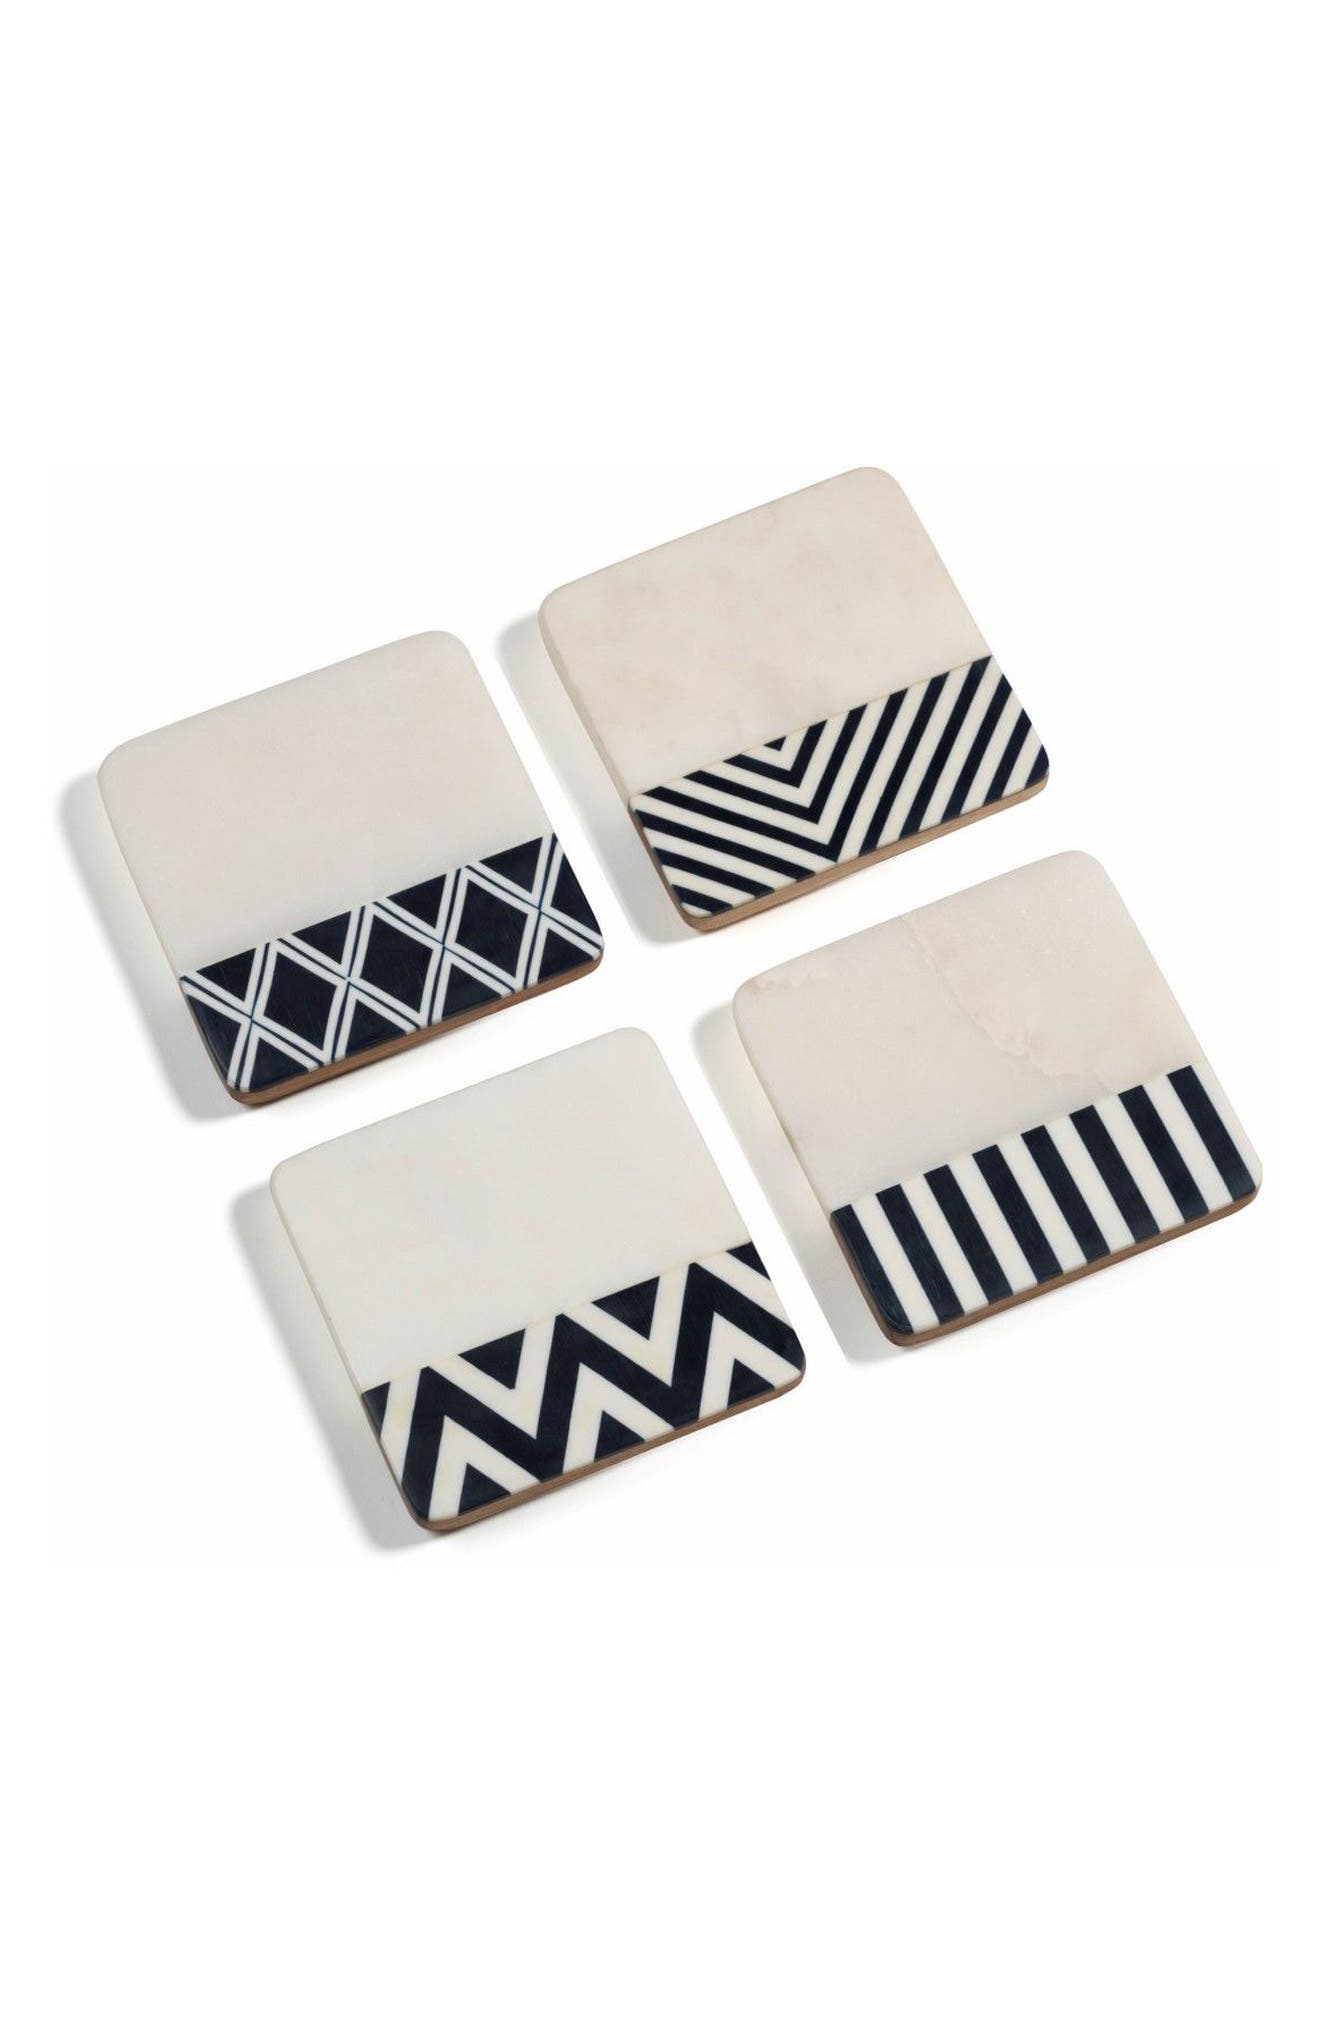 Main Image - Zodax Marine Set of 4 Wood & Marble Coasters